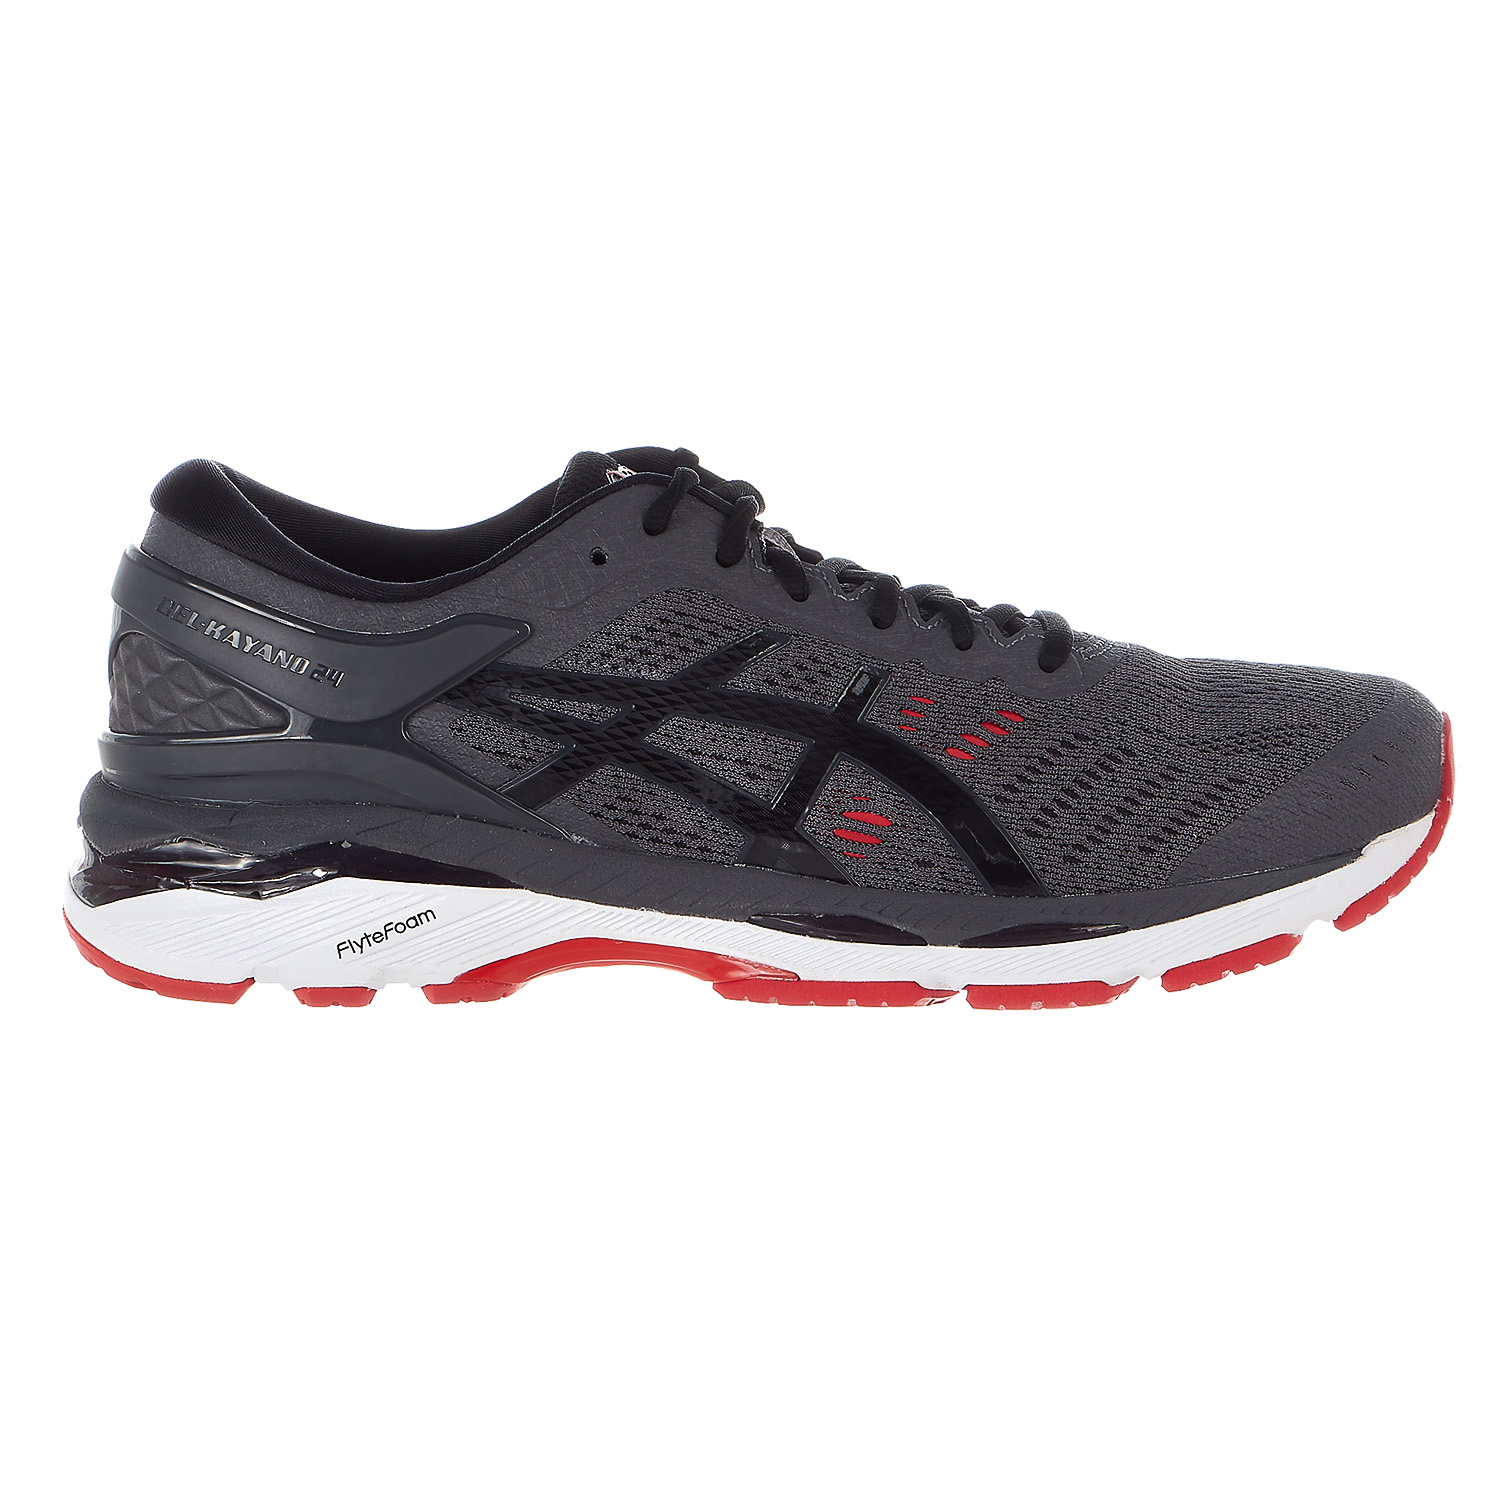 Asics GEL-Kayano 24 Shoes Mens by Asics